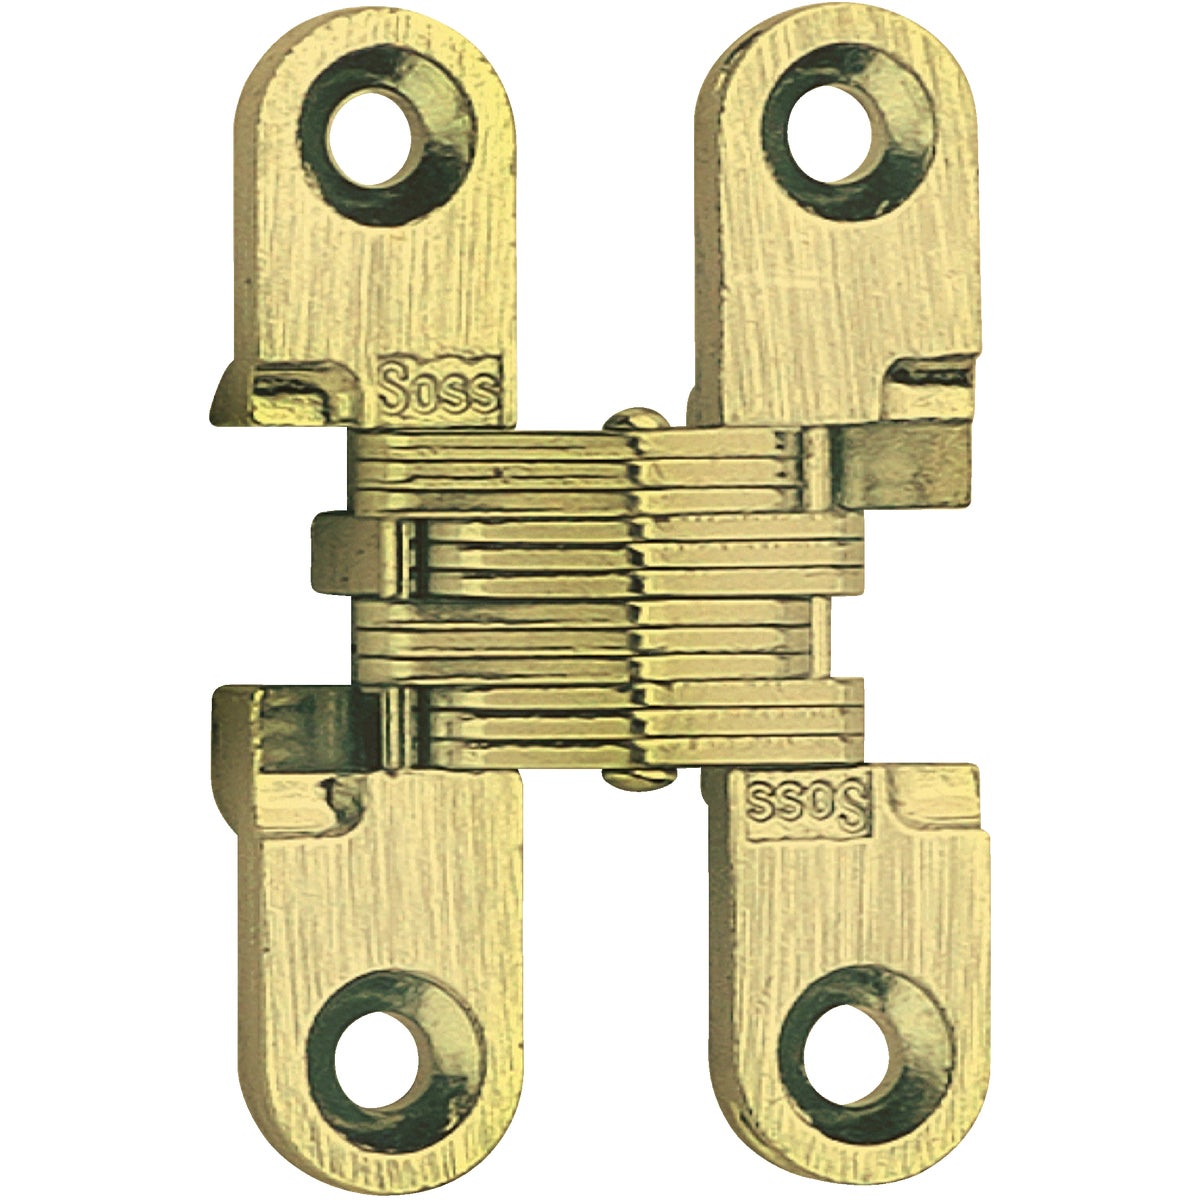 1/2X2-3/8 INVIS HINGE - 204CUS4 by Universal Ind Prod